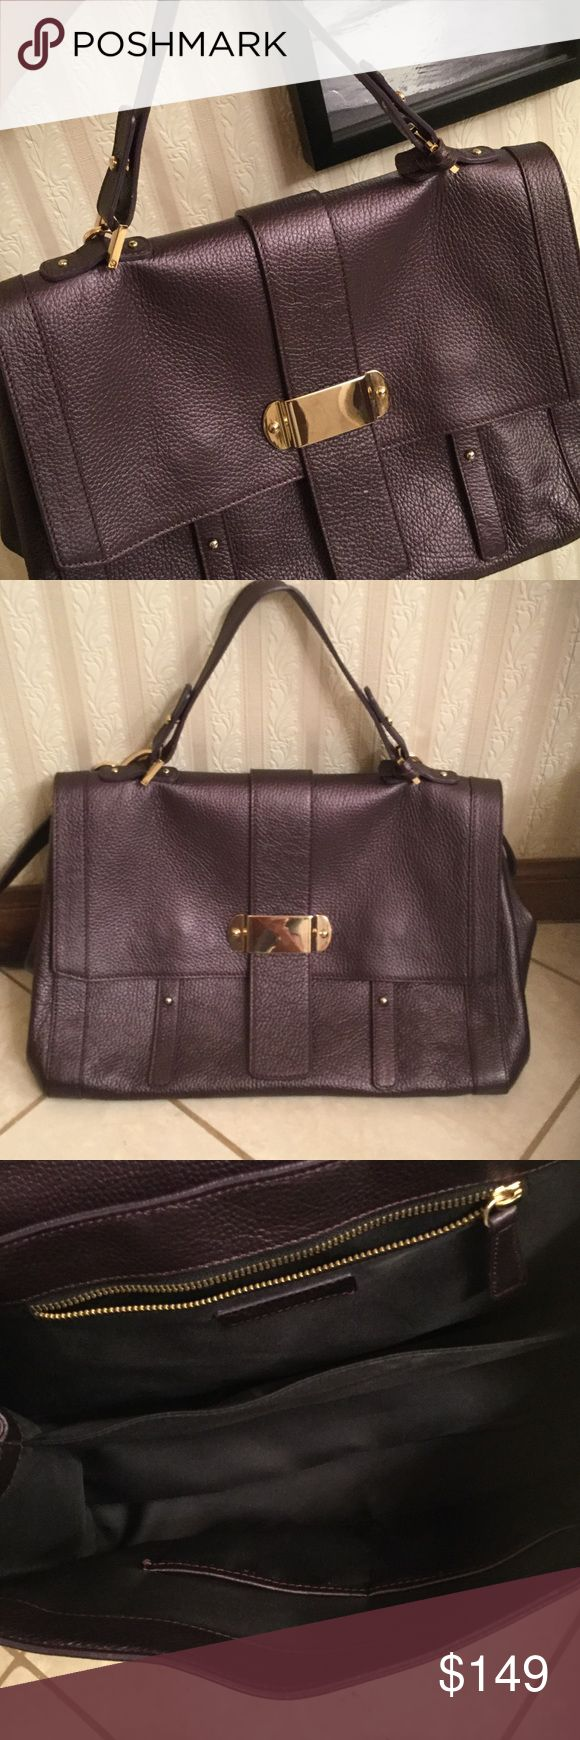 Varriale Italy leather bag plum varriale italy pebbled leather plum Varriale Italy Bags Satchels